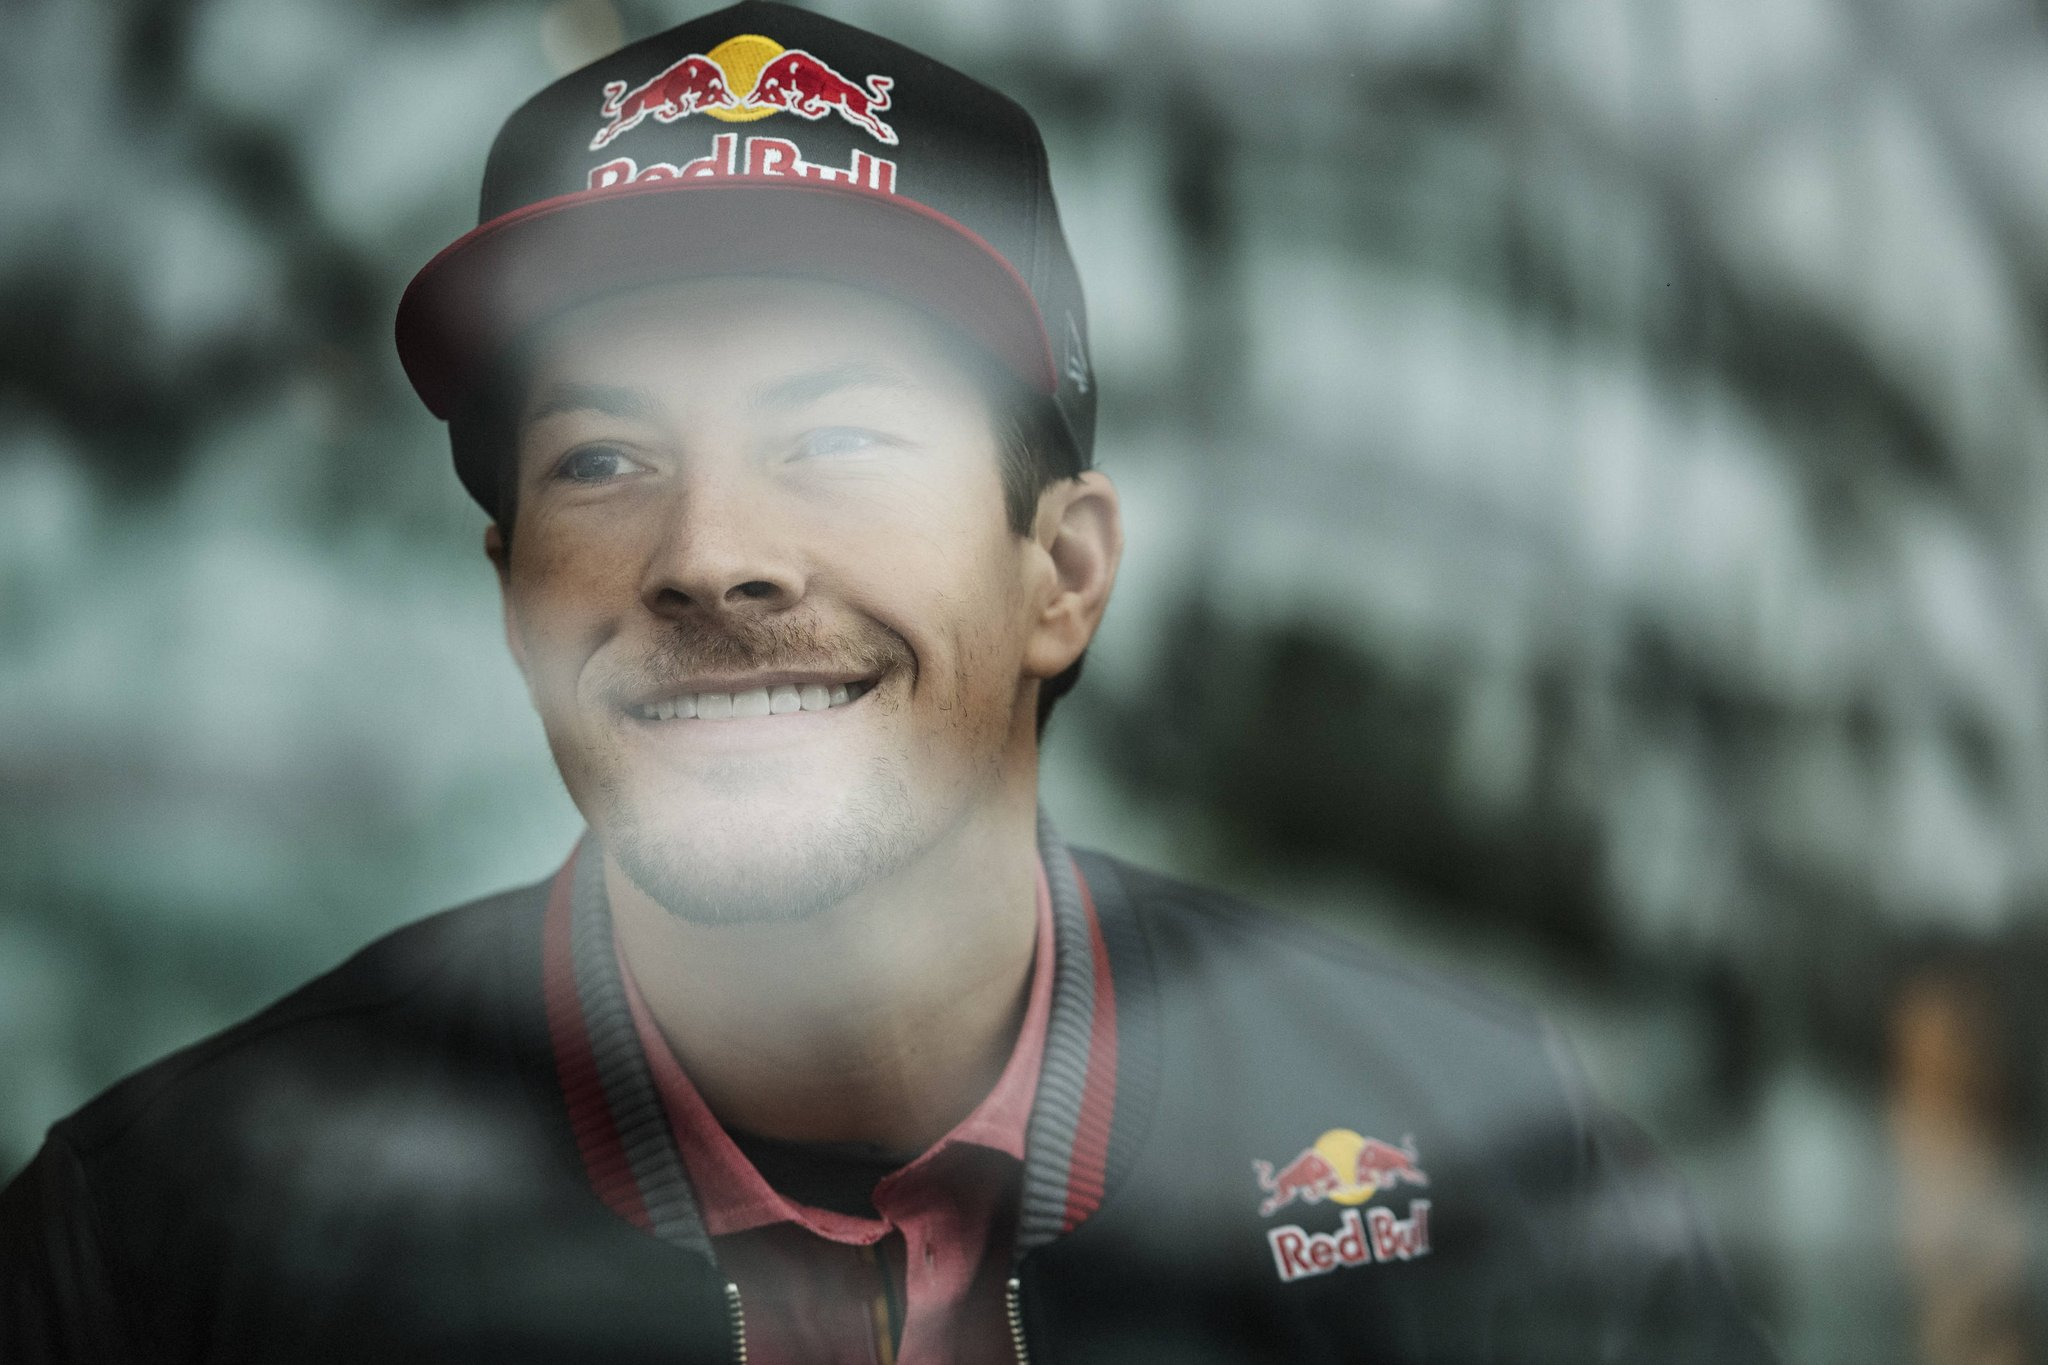 Thumbnail for Nicky Hayden dies after cycling accident